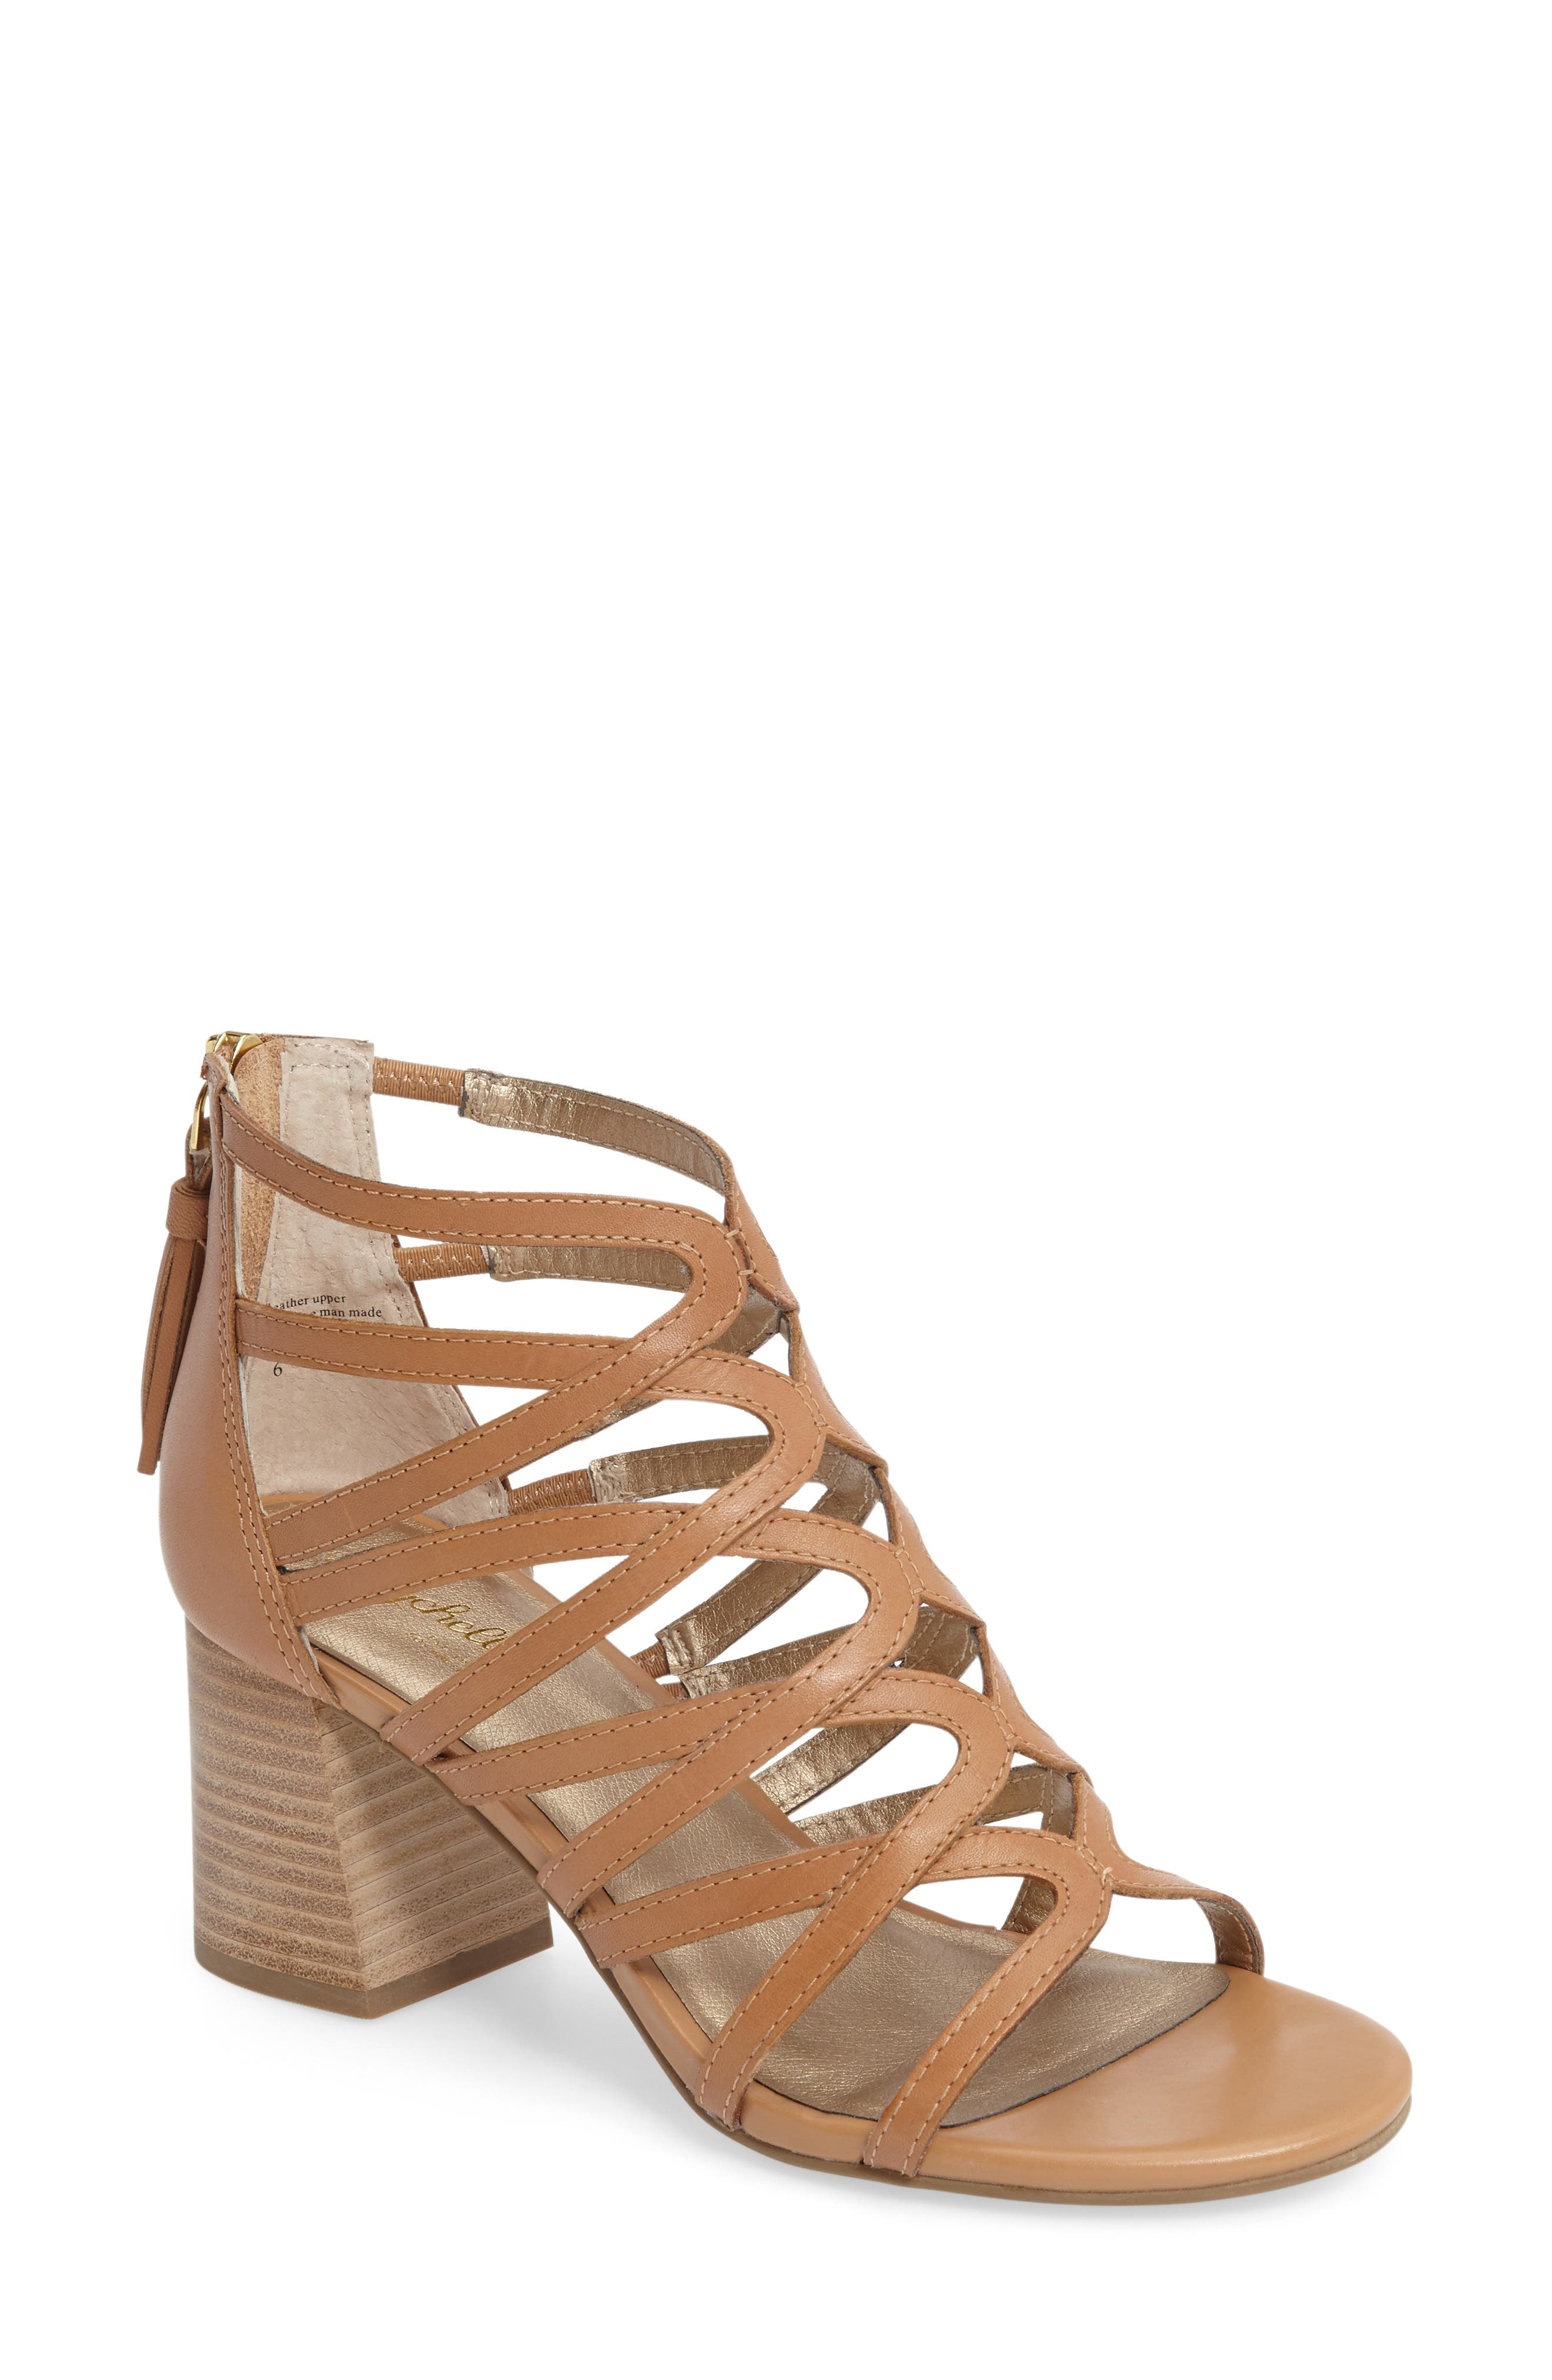 One Kiss Sandal,                         Main,                         color, Vacchetta Leather